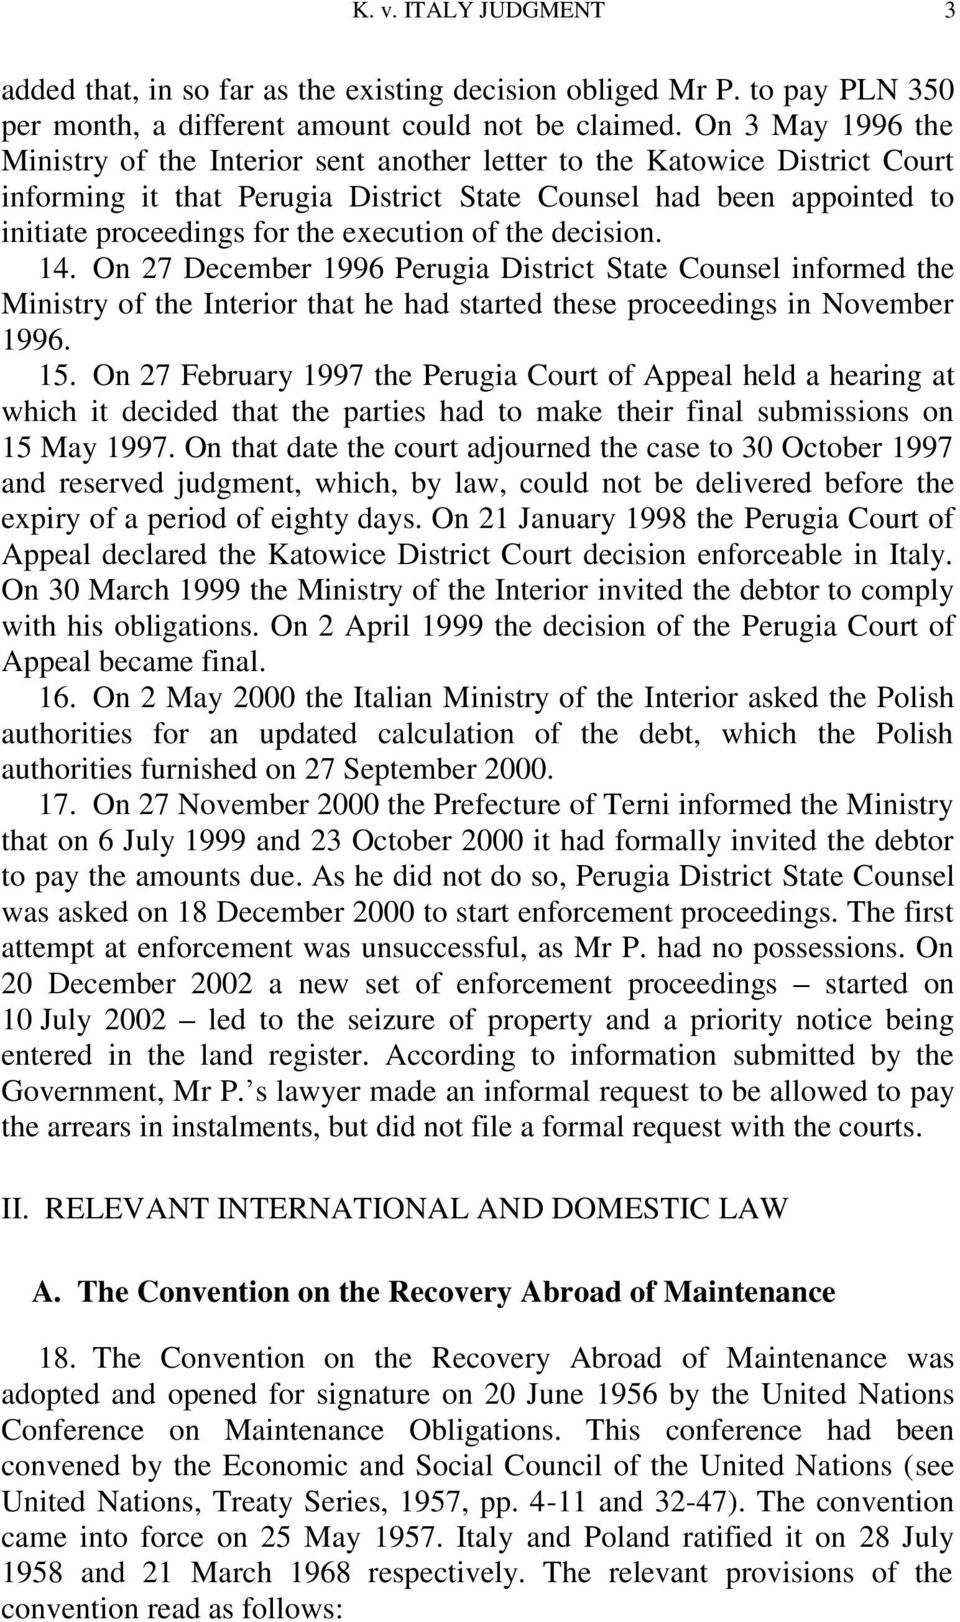 execution of the decision. 14. On 27 December 1996 Perugia District State Counsel informed the Ministry of the Interior that he had started these proceedings in November 1996. 15.